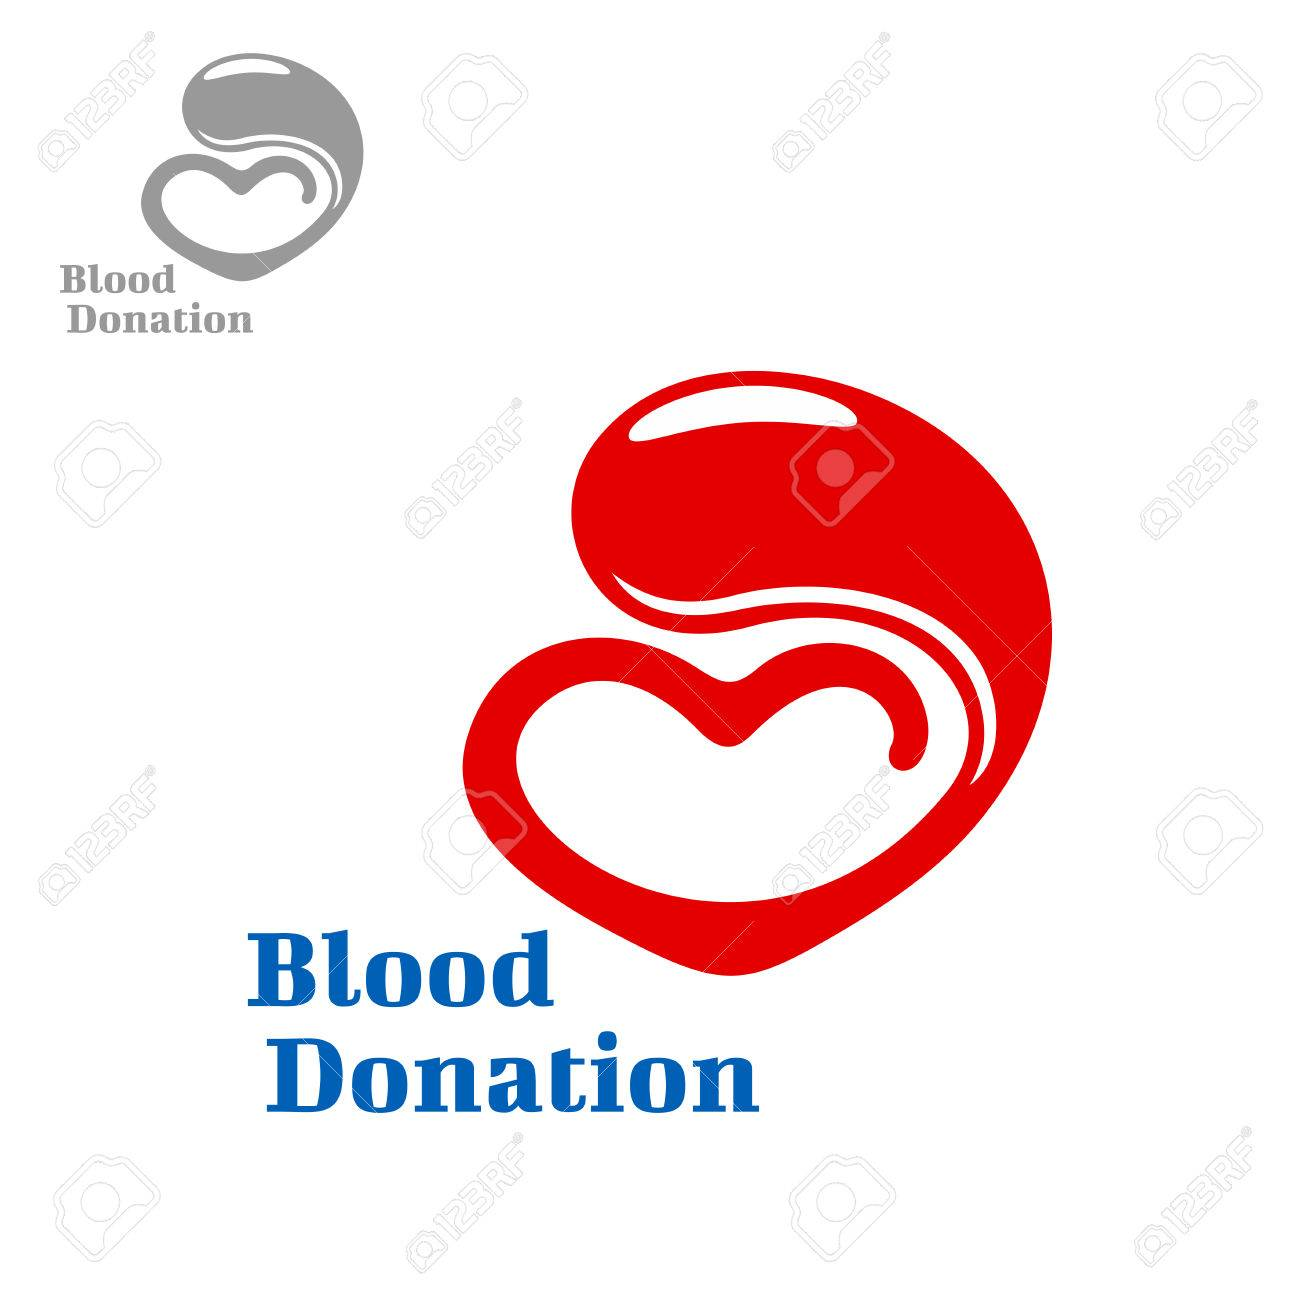 Blood donation symbol design with glowing red drop of blood blood donation symbol design with glowing red drop of blood flowing into a heart healthcare buycottarizona